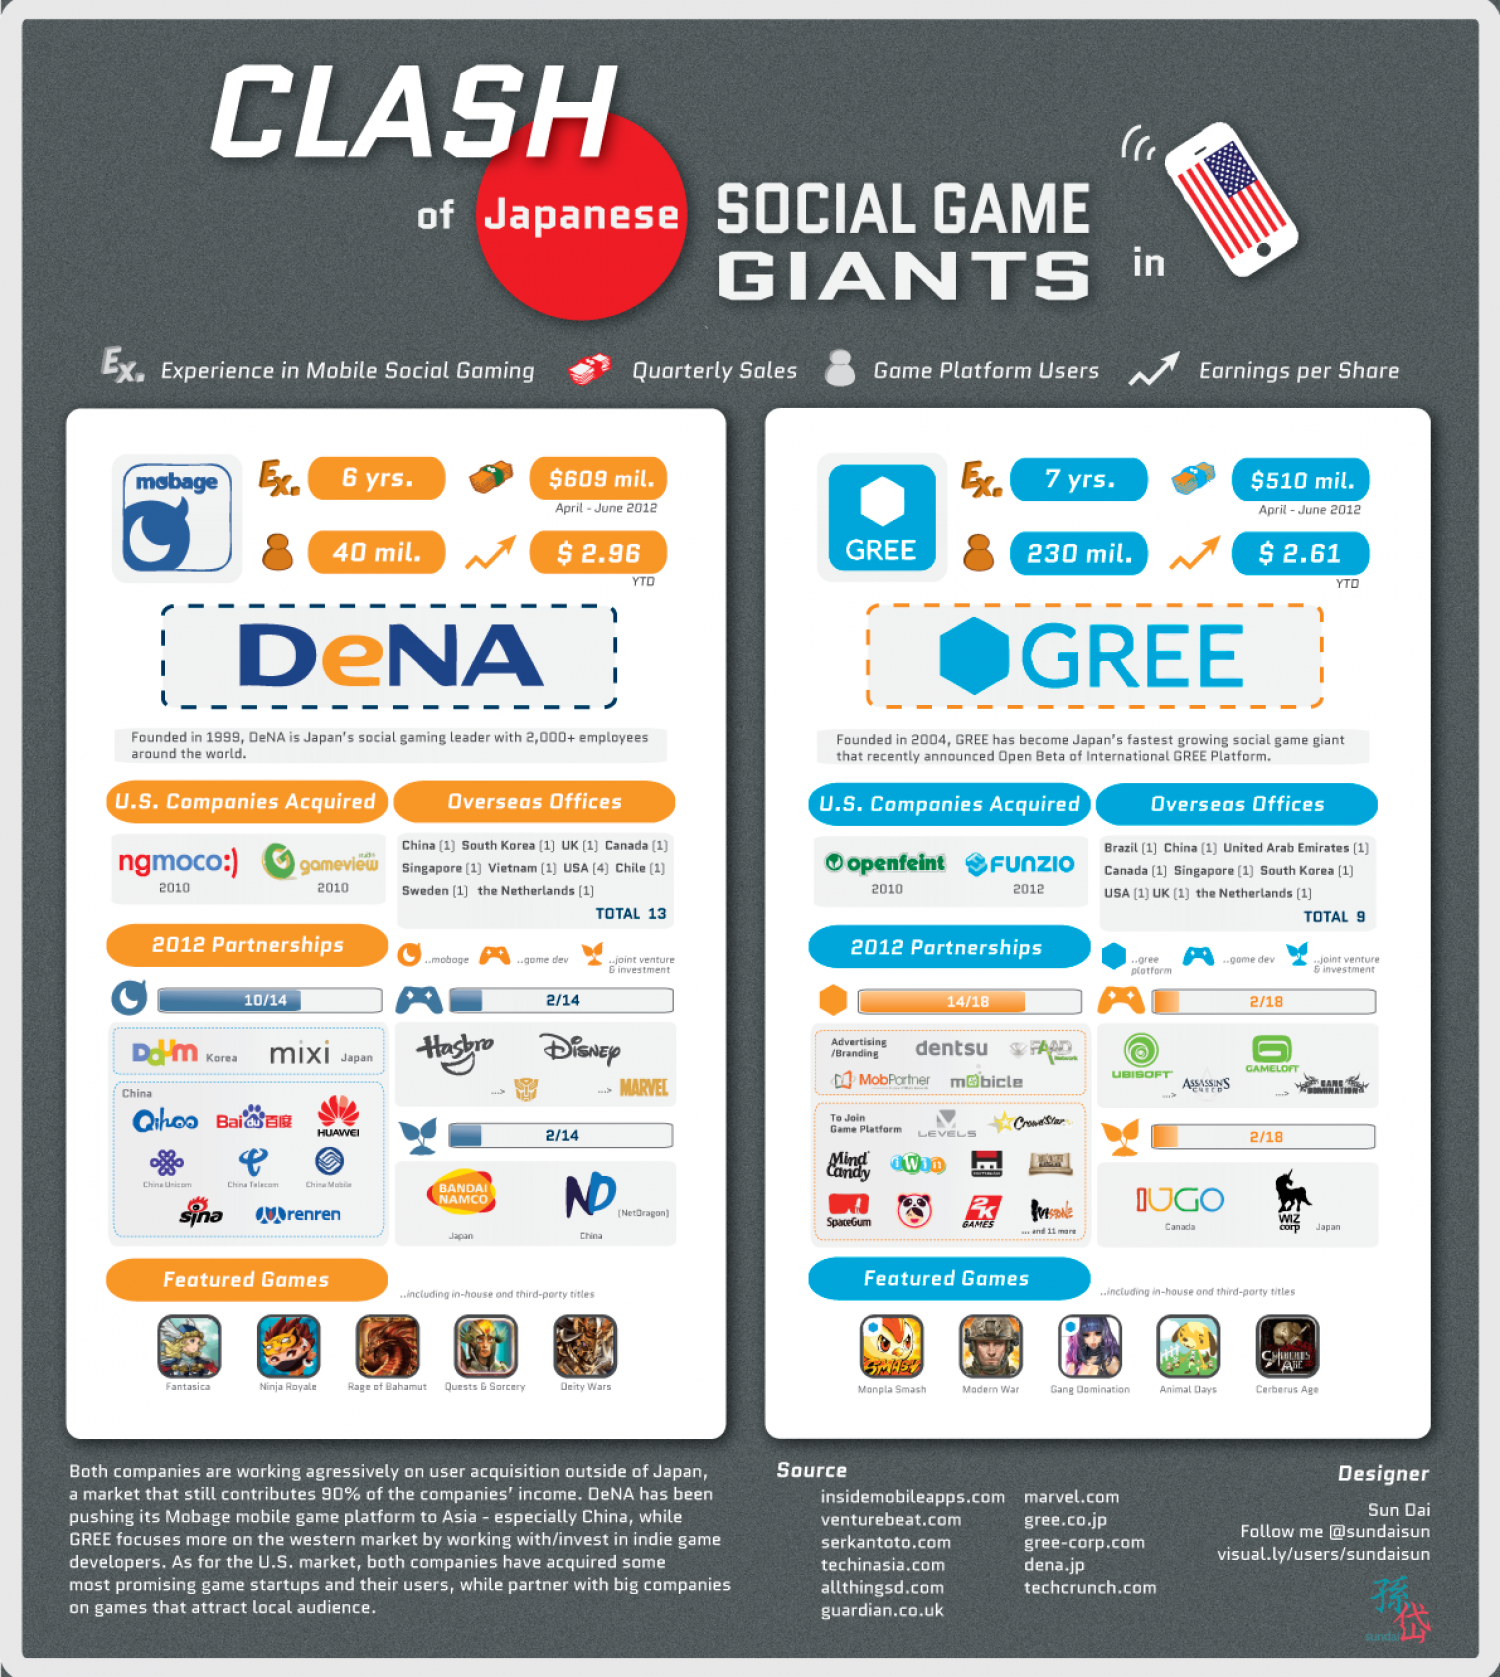 Japanese Social Game Giants Infographic